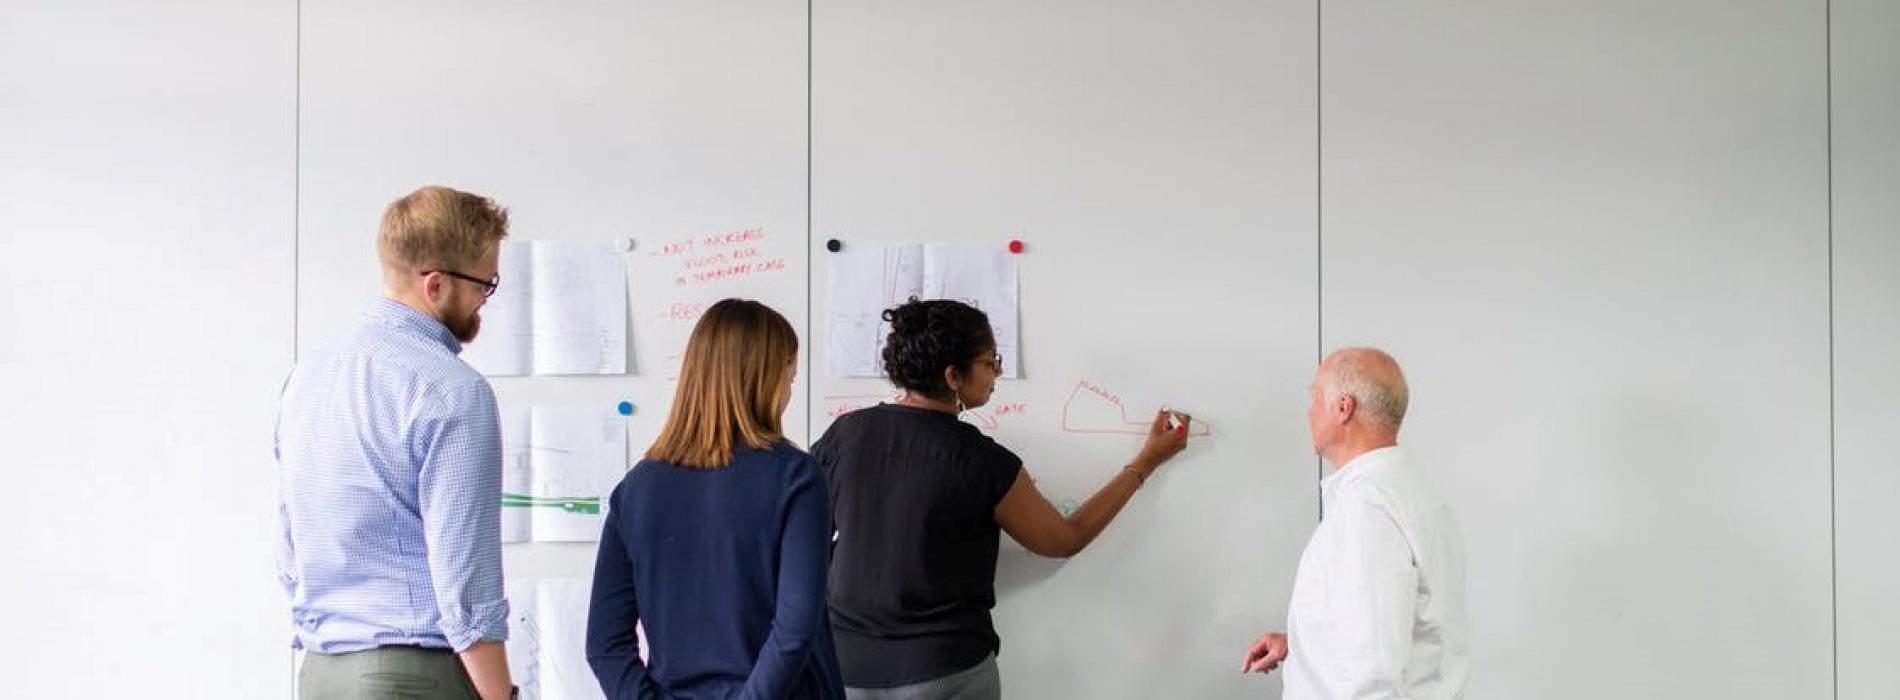 How Good Product Managers Identify Customer Needs